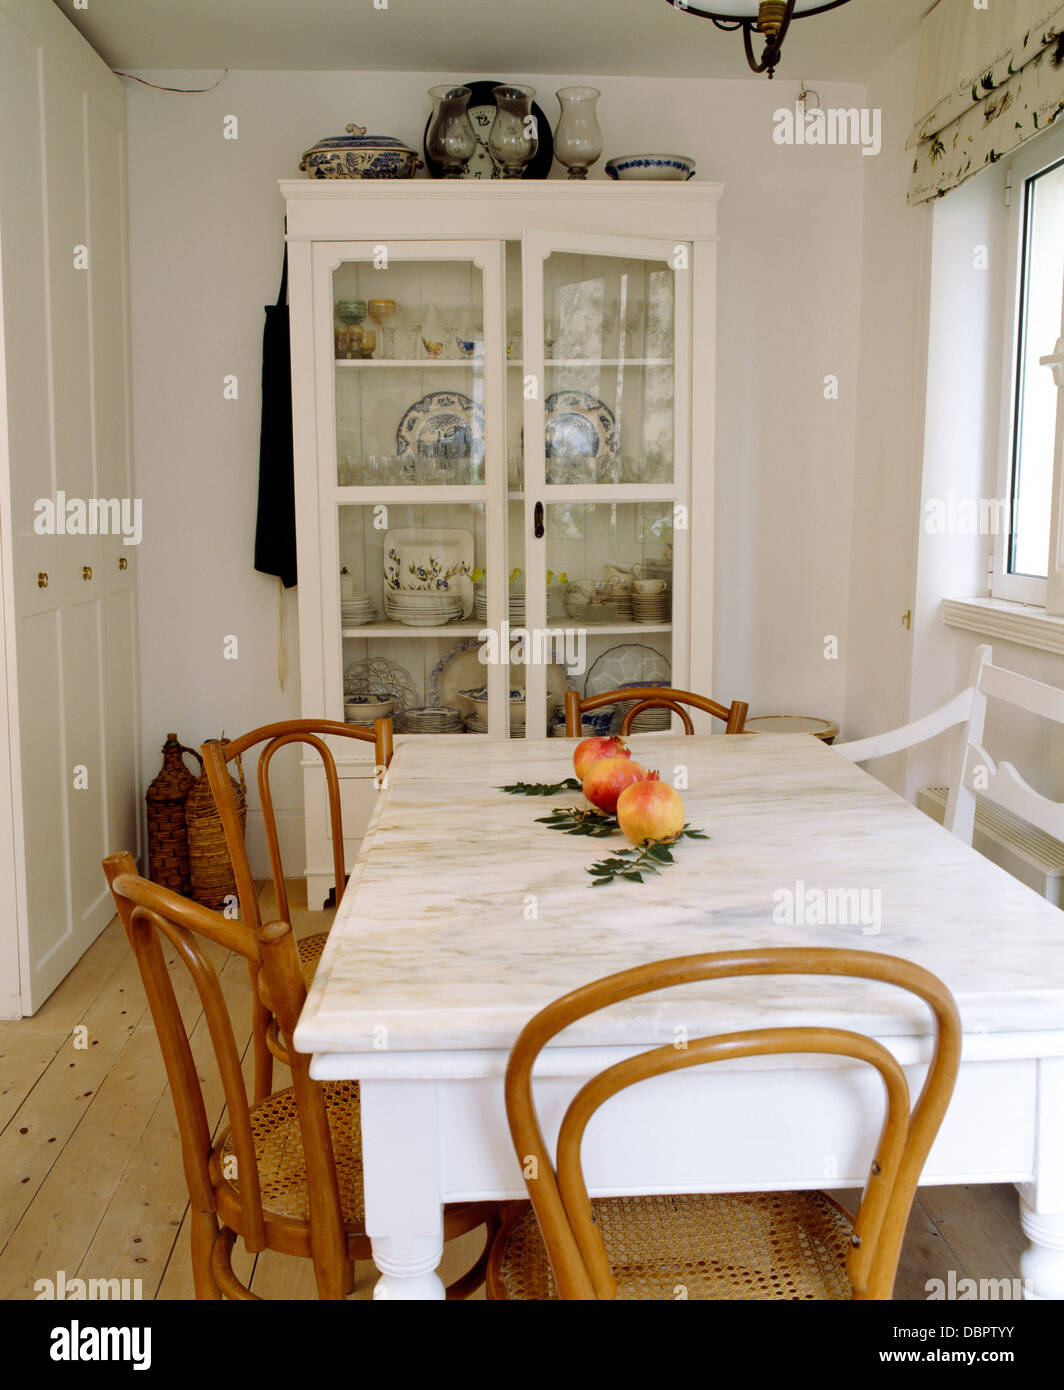 Marble-topped painted table with antique Bentwood chairs in white coastal  dining room with white glass-front cupboard - Marble-topped Painted Table With Antique Bentwood Chairs In White